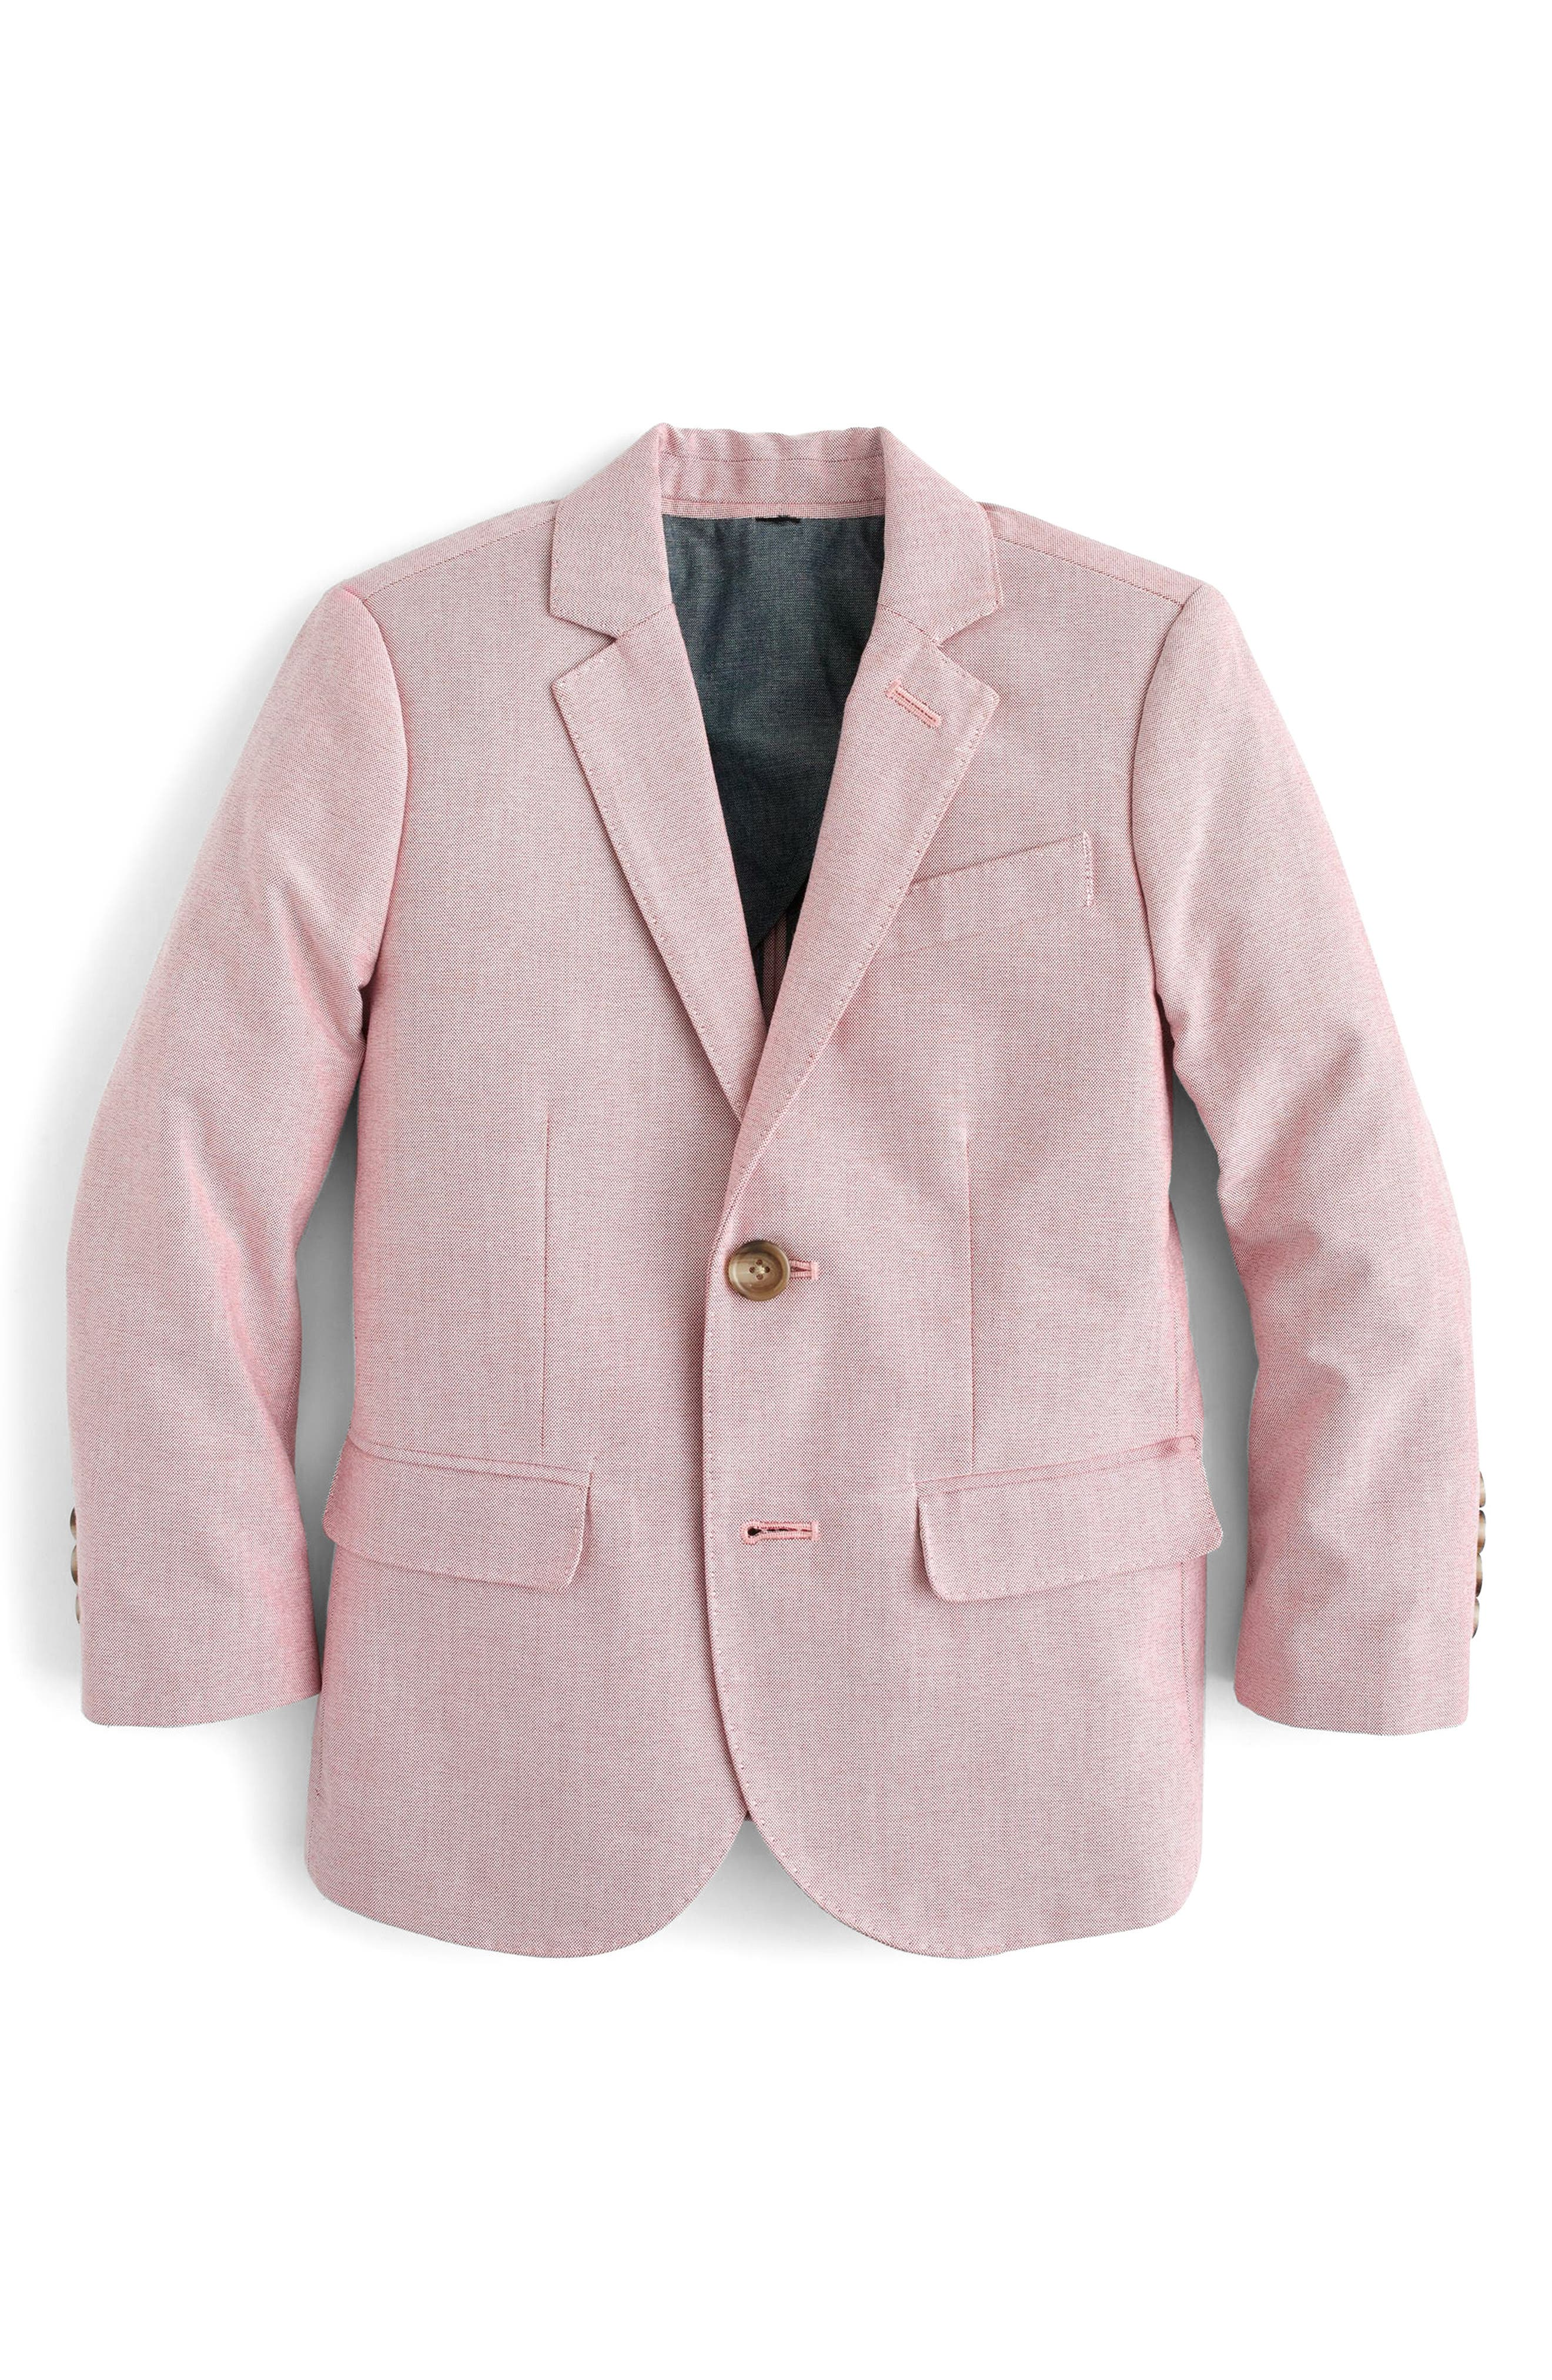 CREWCUTS BY J.CREW,                             Ludlow Stretch Oxford Suit Jacket,                             Main thumbnail 1, color,                             600